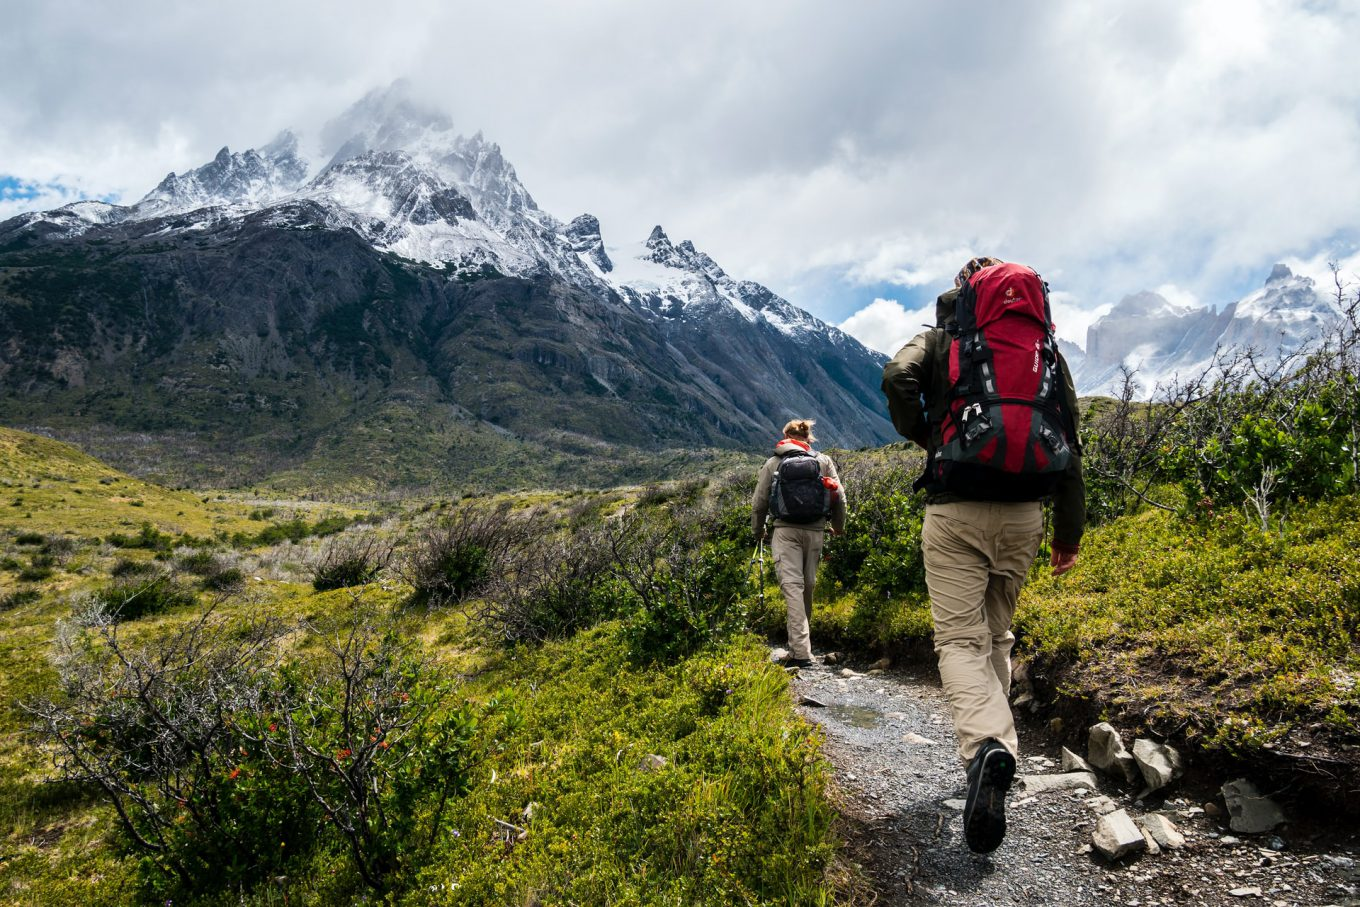 17 Hiking tips and tricks for beginners